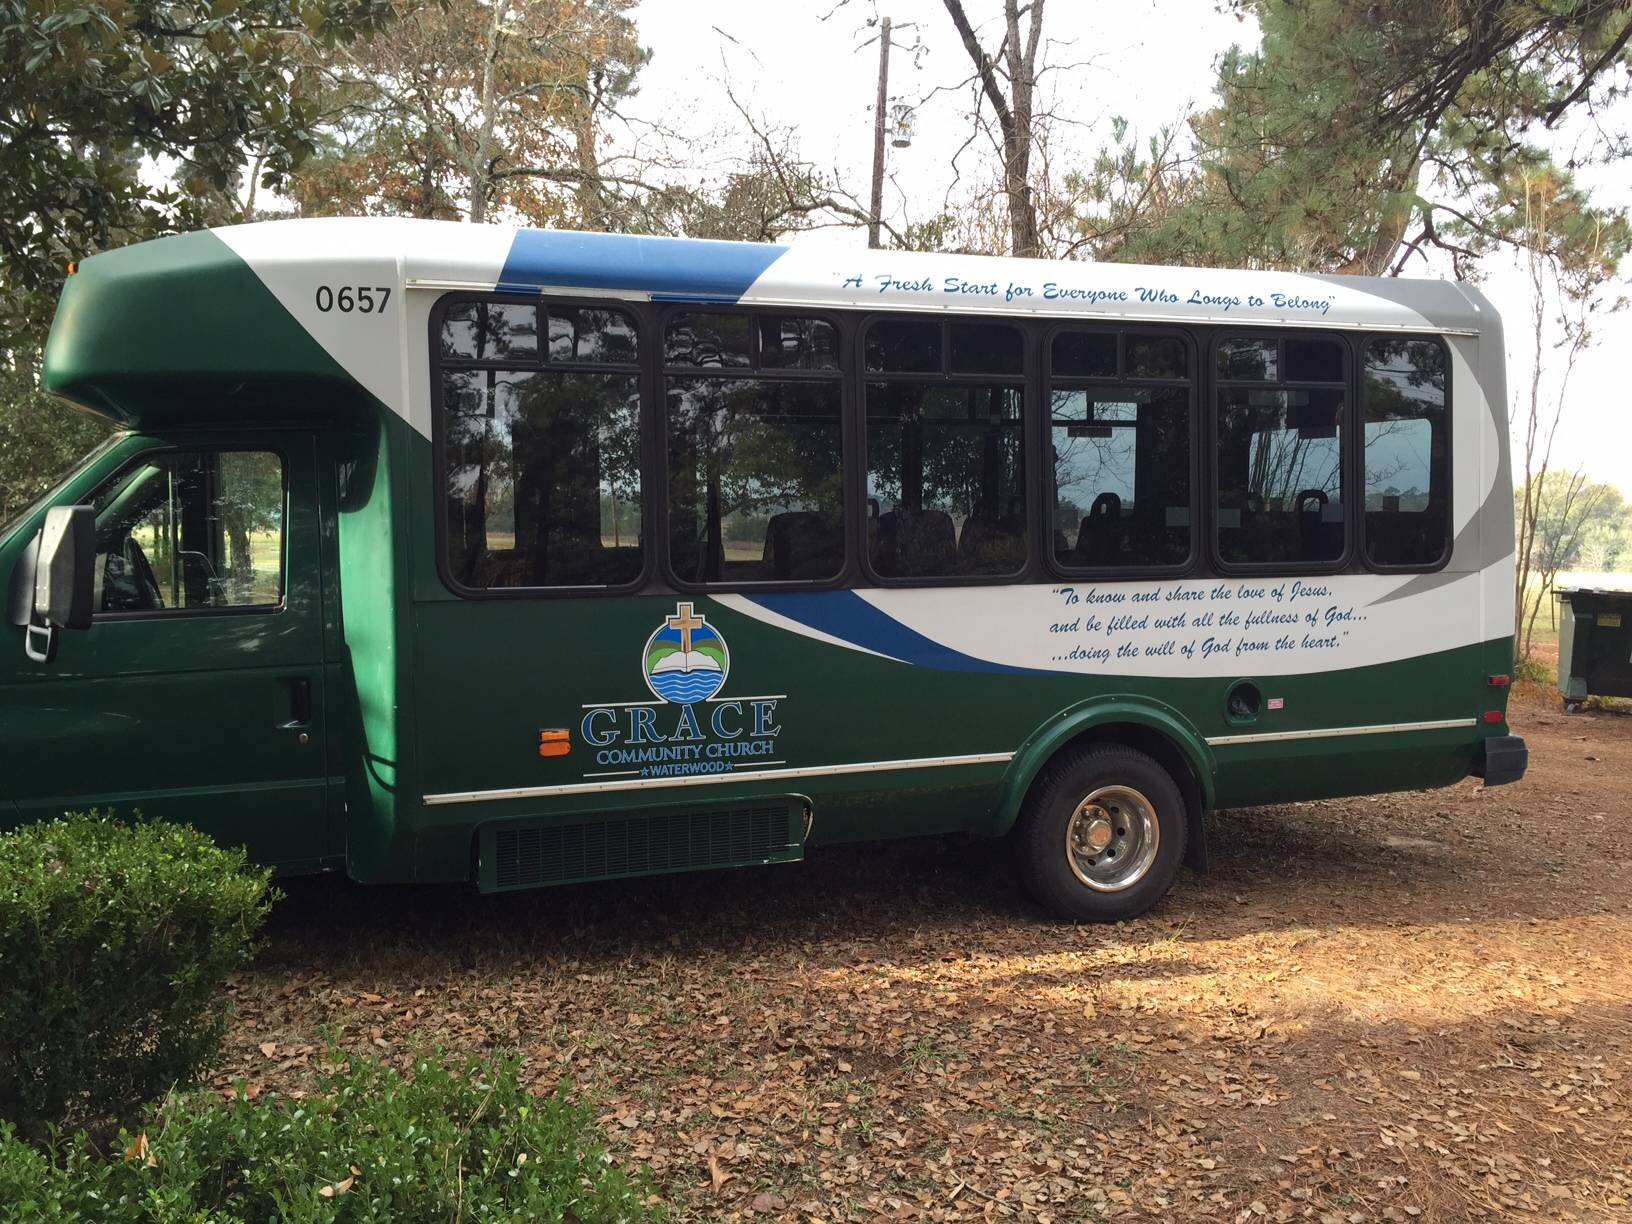 Look for the Grace Baptist Church Bus